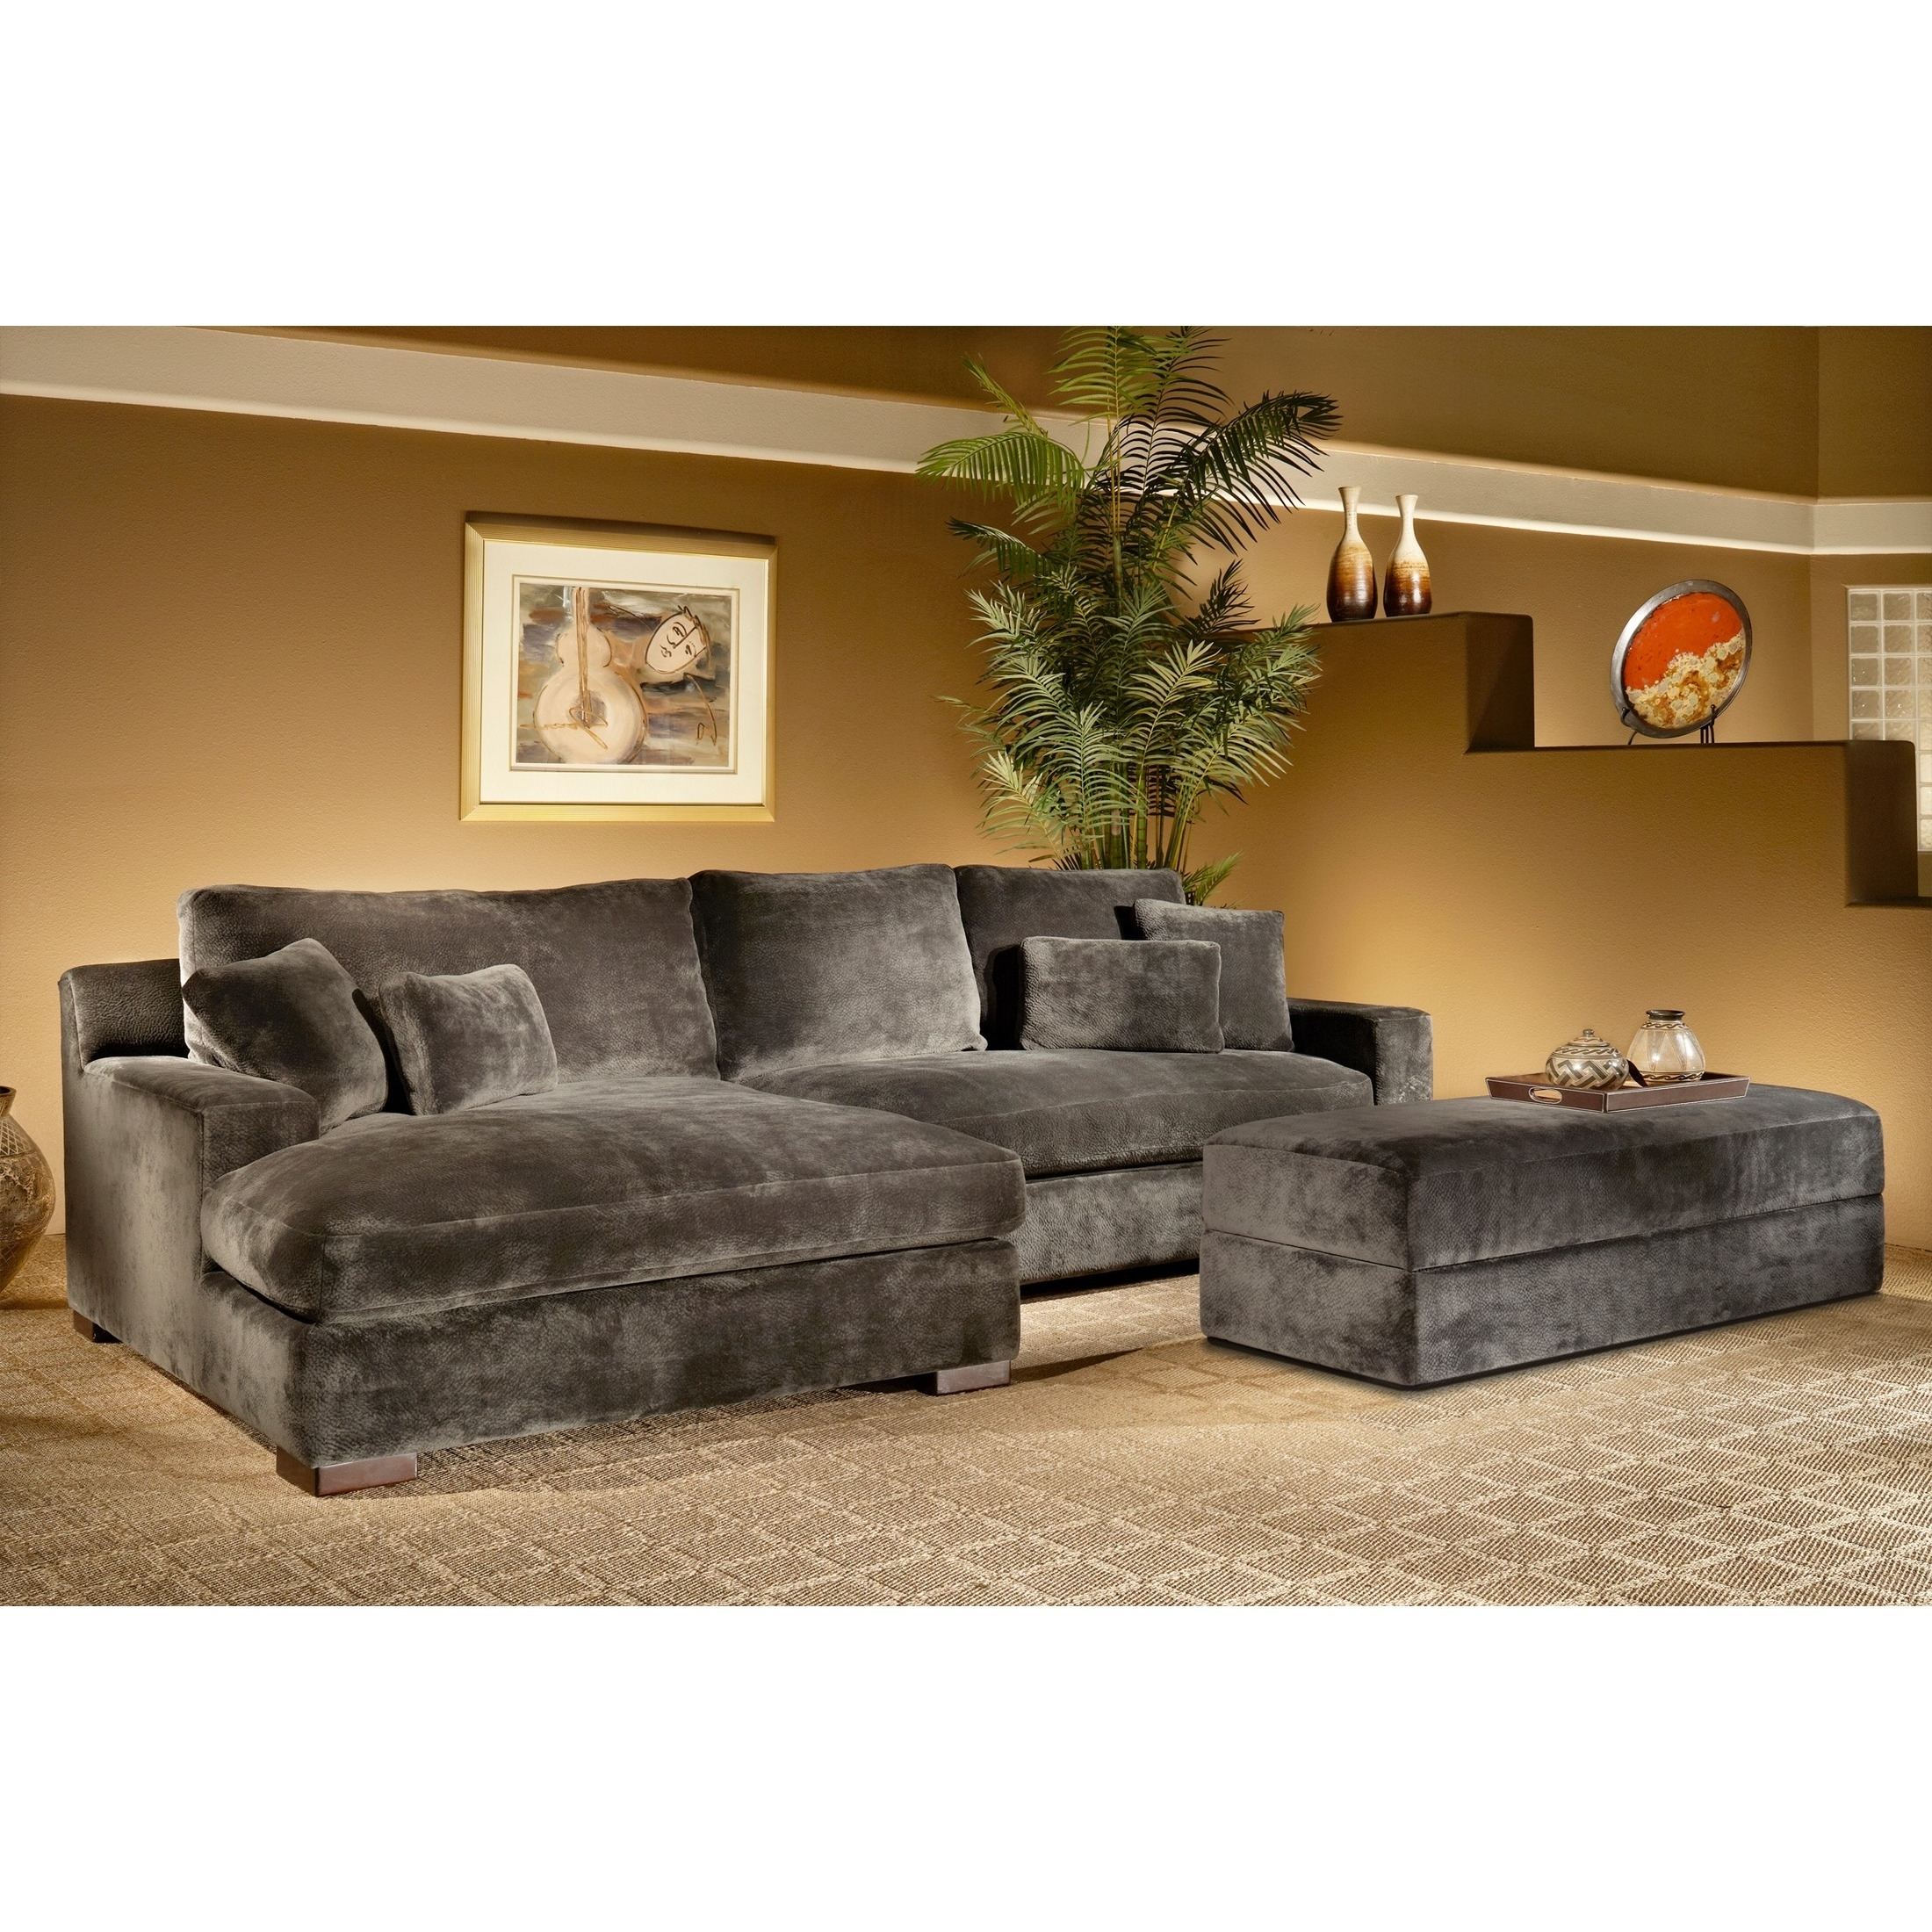 Preferred Wide Seat Sectional Sofas Pertaining To The Doris 3 Piece Smoke Sectional Sofa With Storage Ottoman Is (View 4 of 20)